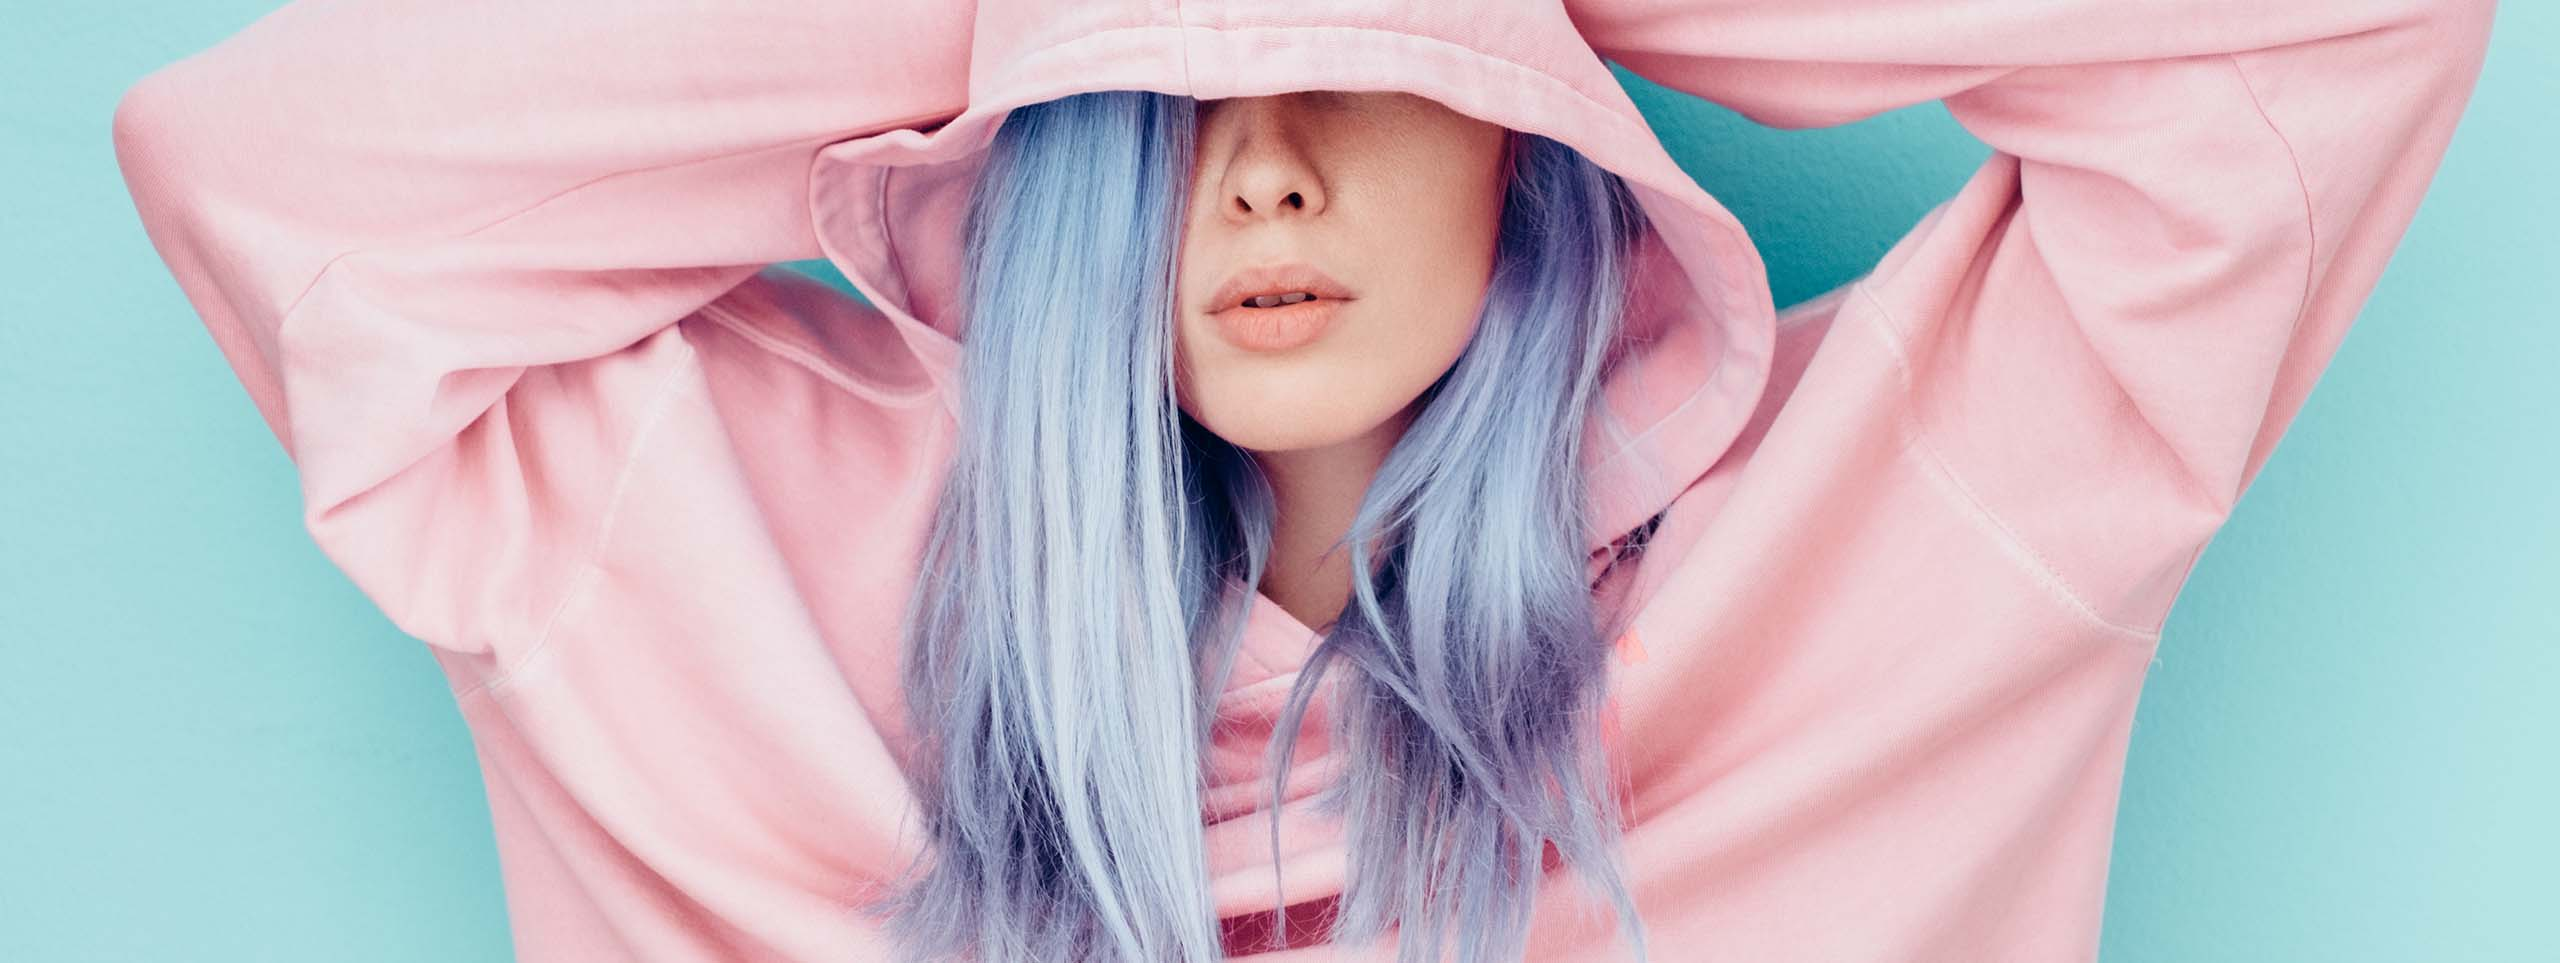 Pretty Pink And Cool Pale Blue Hot Hair Colors For Young